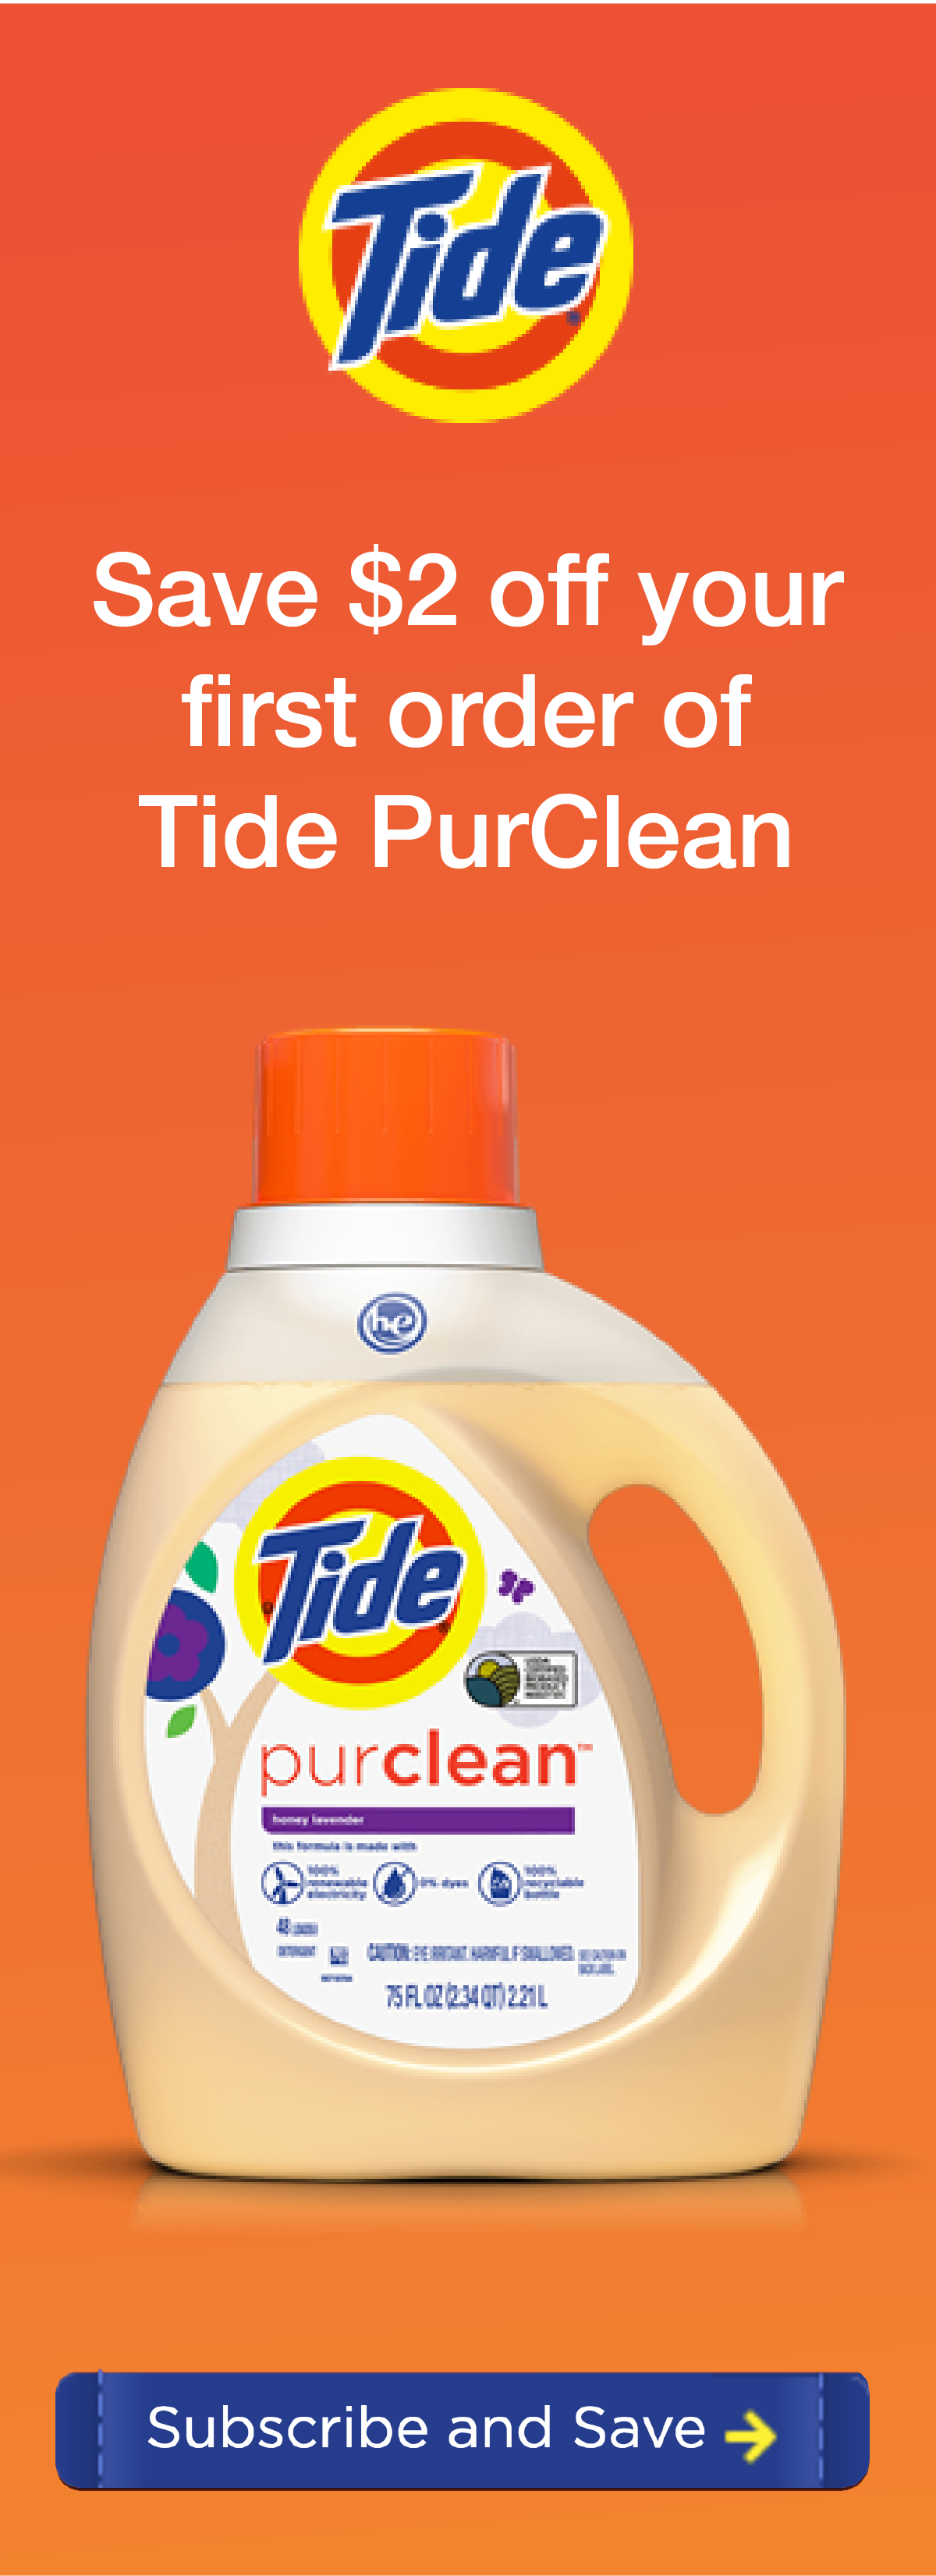 Tide Purclean Powerful Affordable Plant Based Laundry Detergent